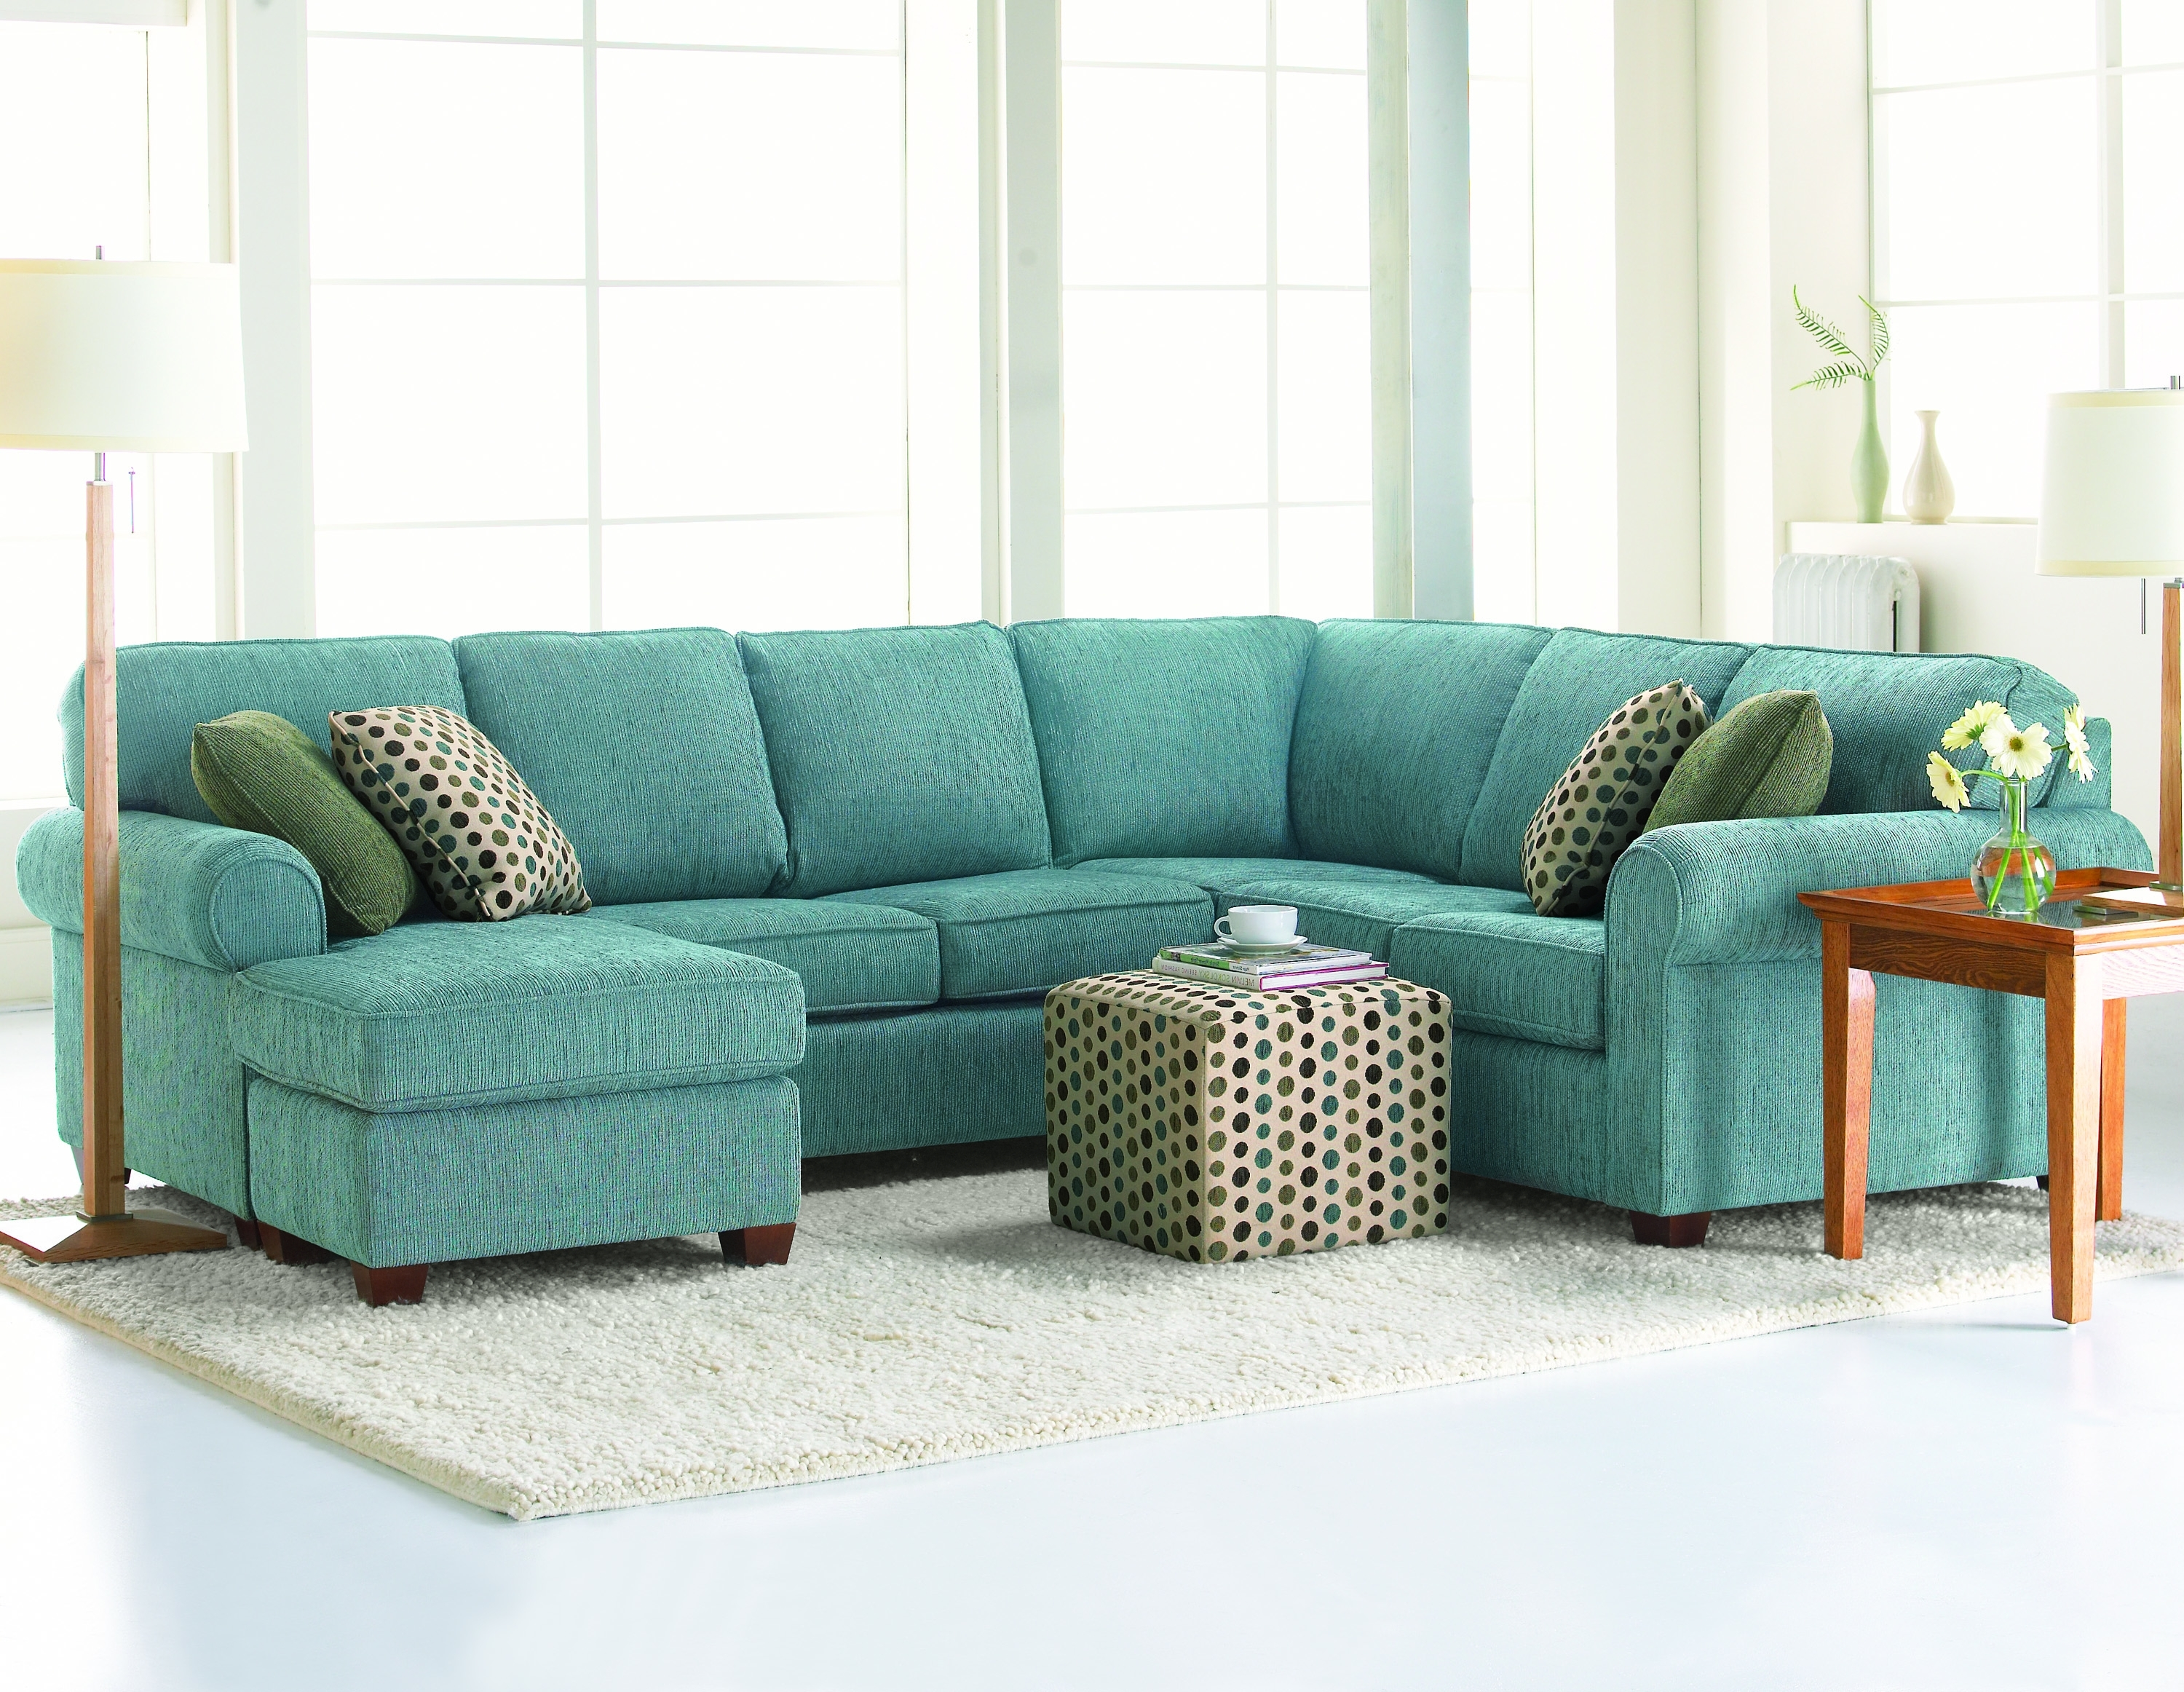 Preferred Ontario Canada Sectional Sofas For Sectional Sofas – Thompson Brothers Furniture (View 16 of 20)